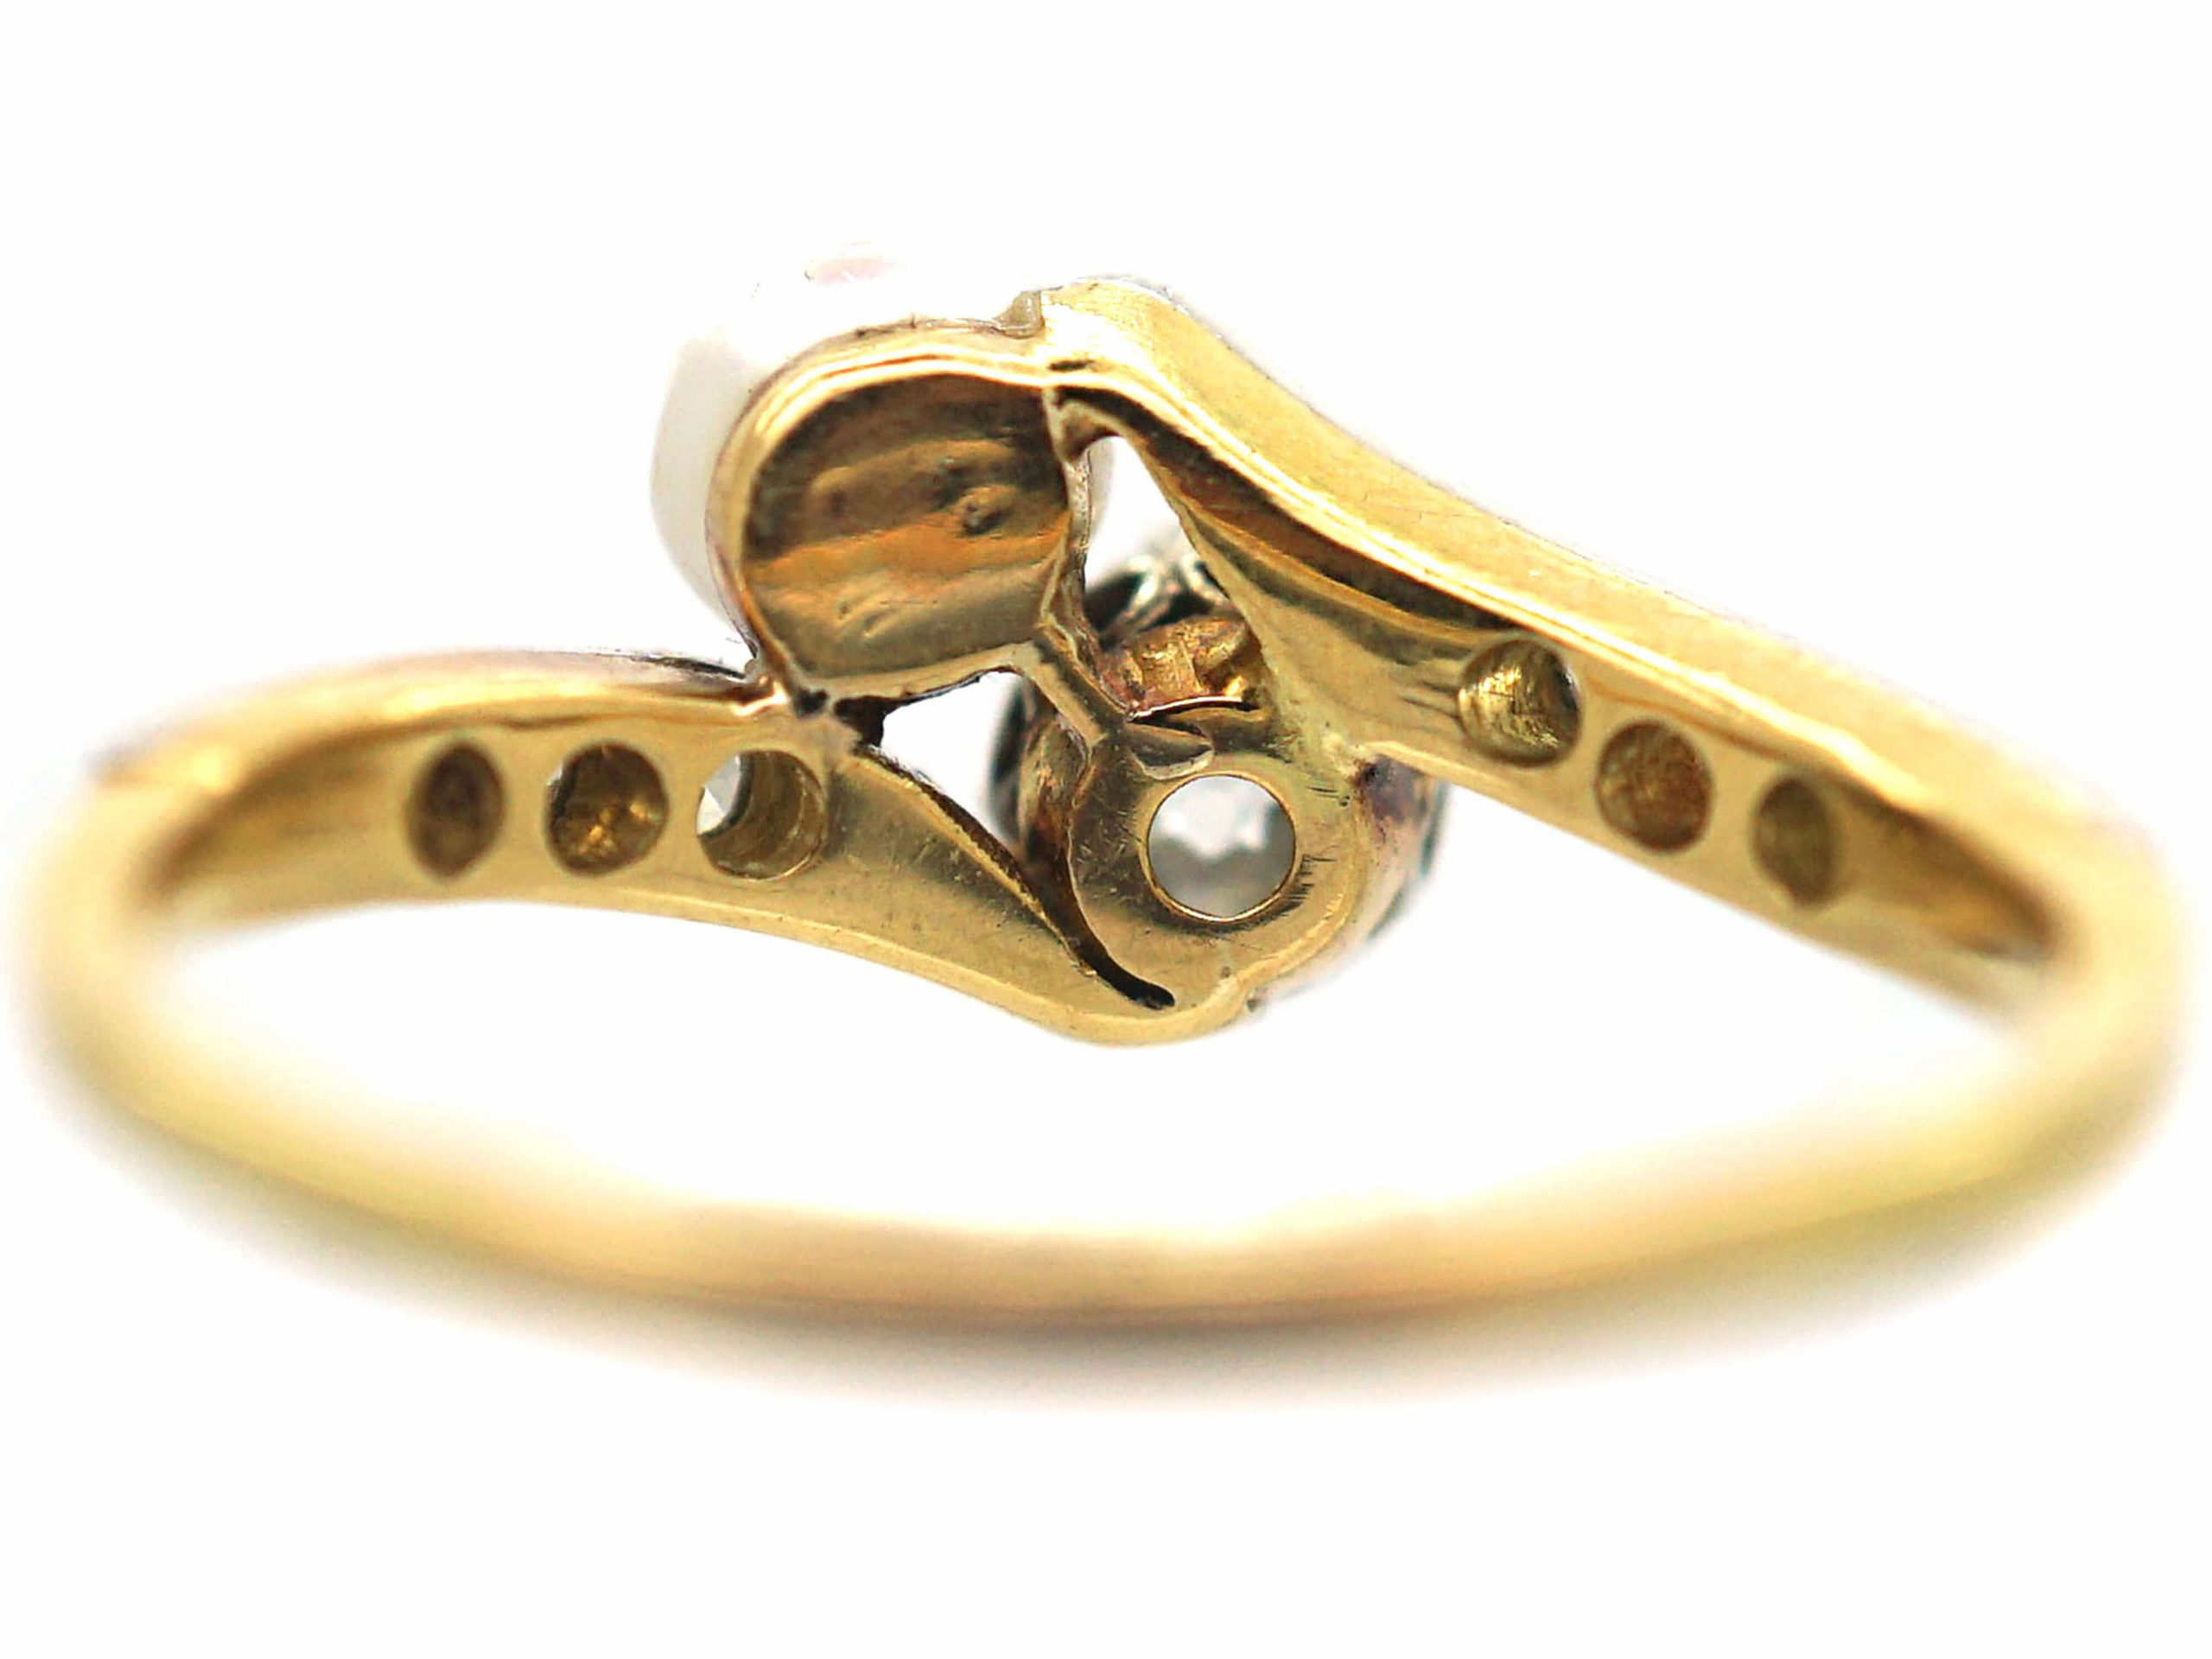 Edwardian 18ct Gold & Platinum Crossover Ring set with a Natural Pearl & a Diamond